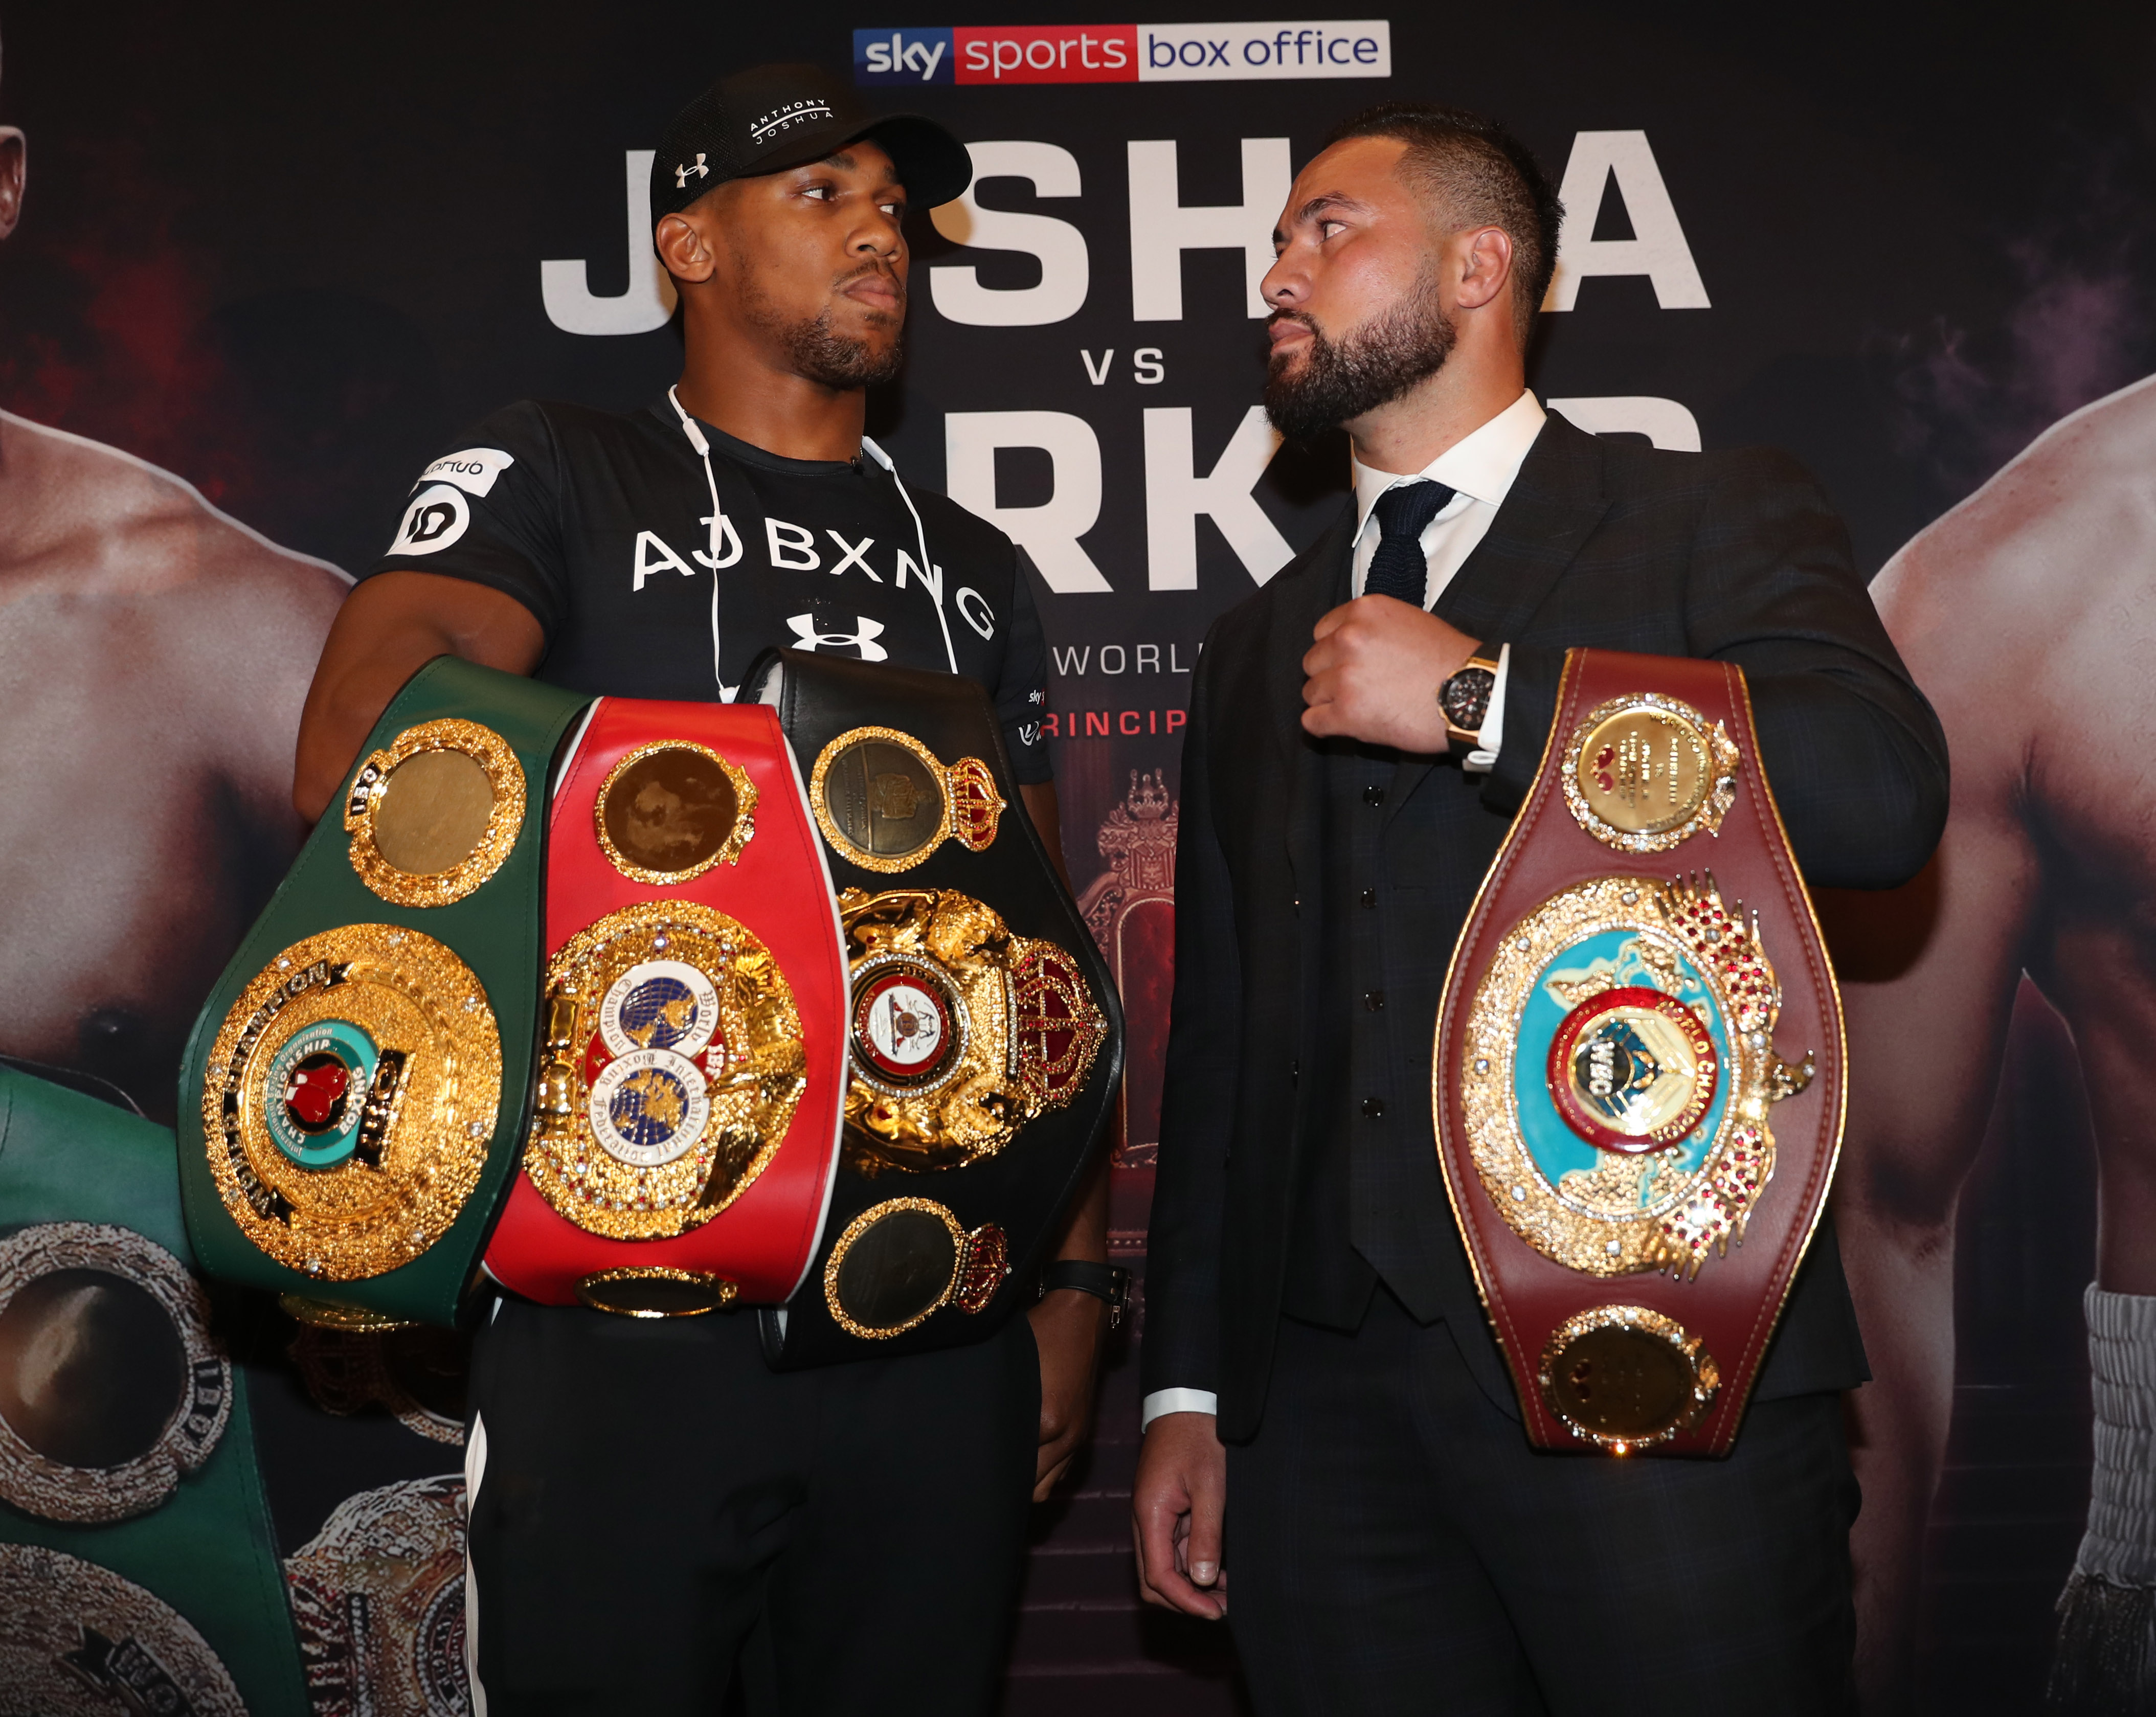 Joshua needs US fight to hit the big time - Khan